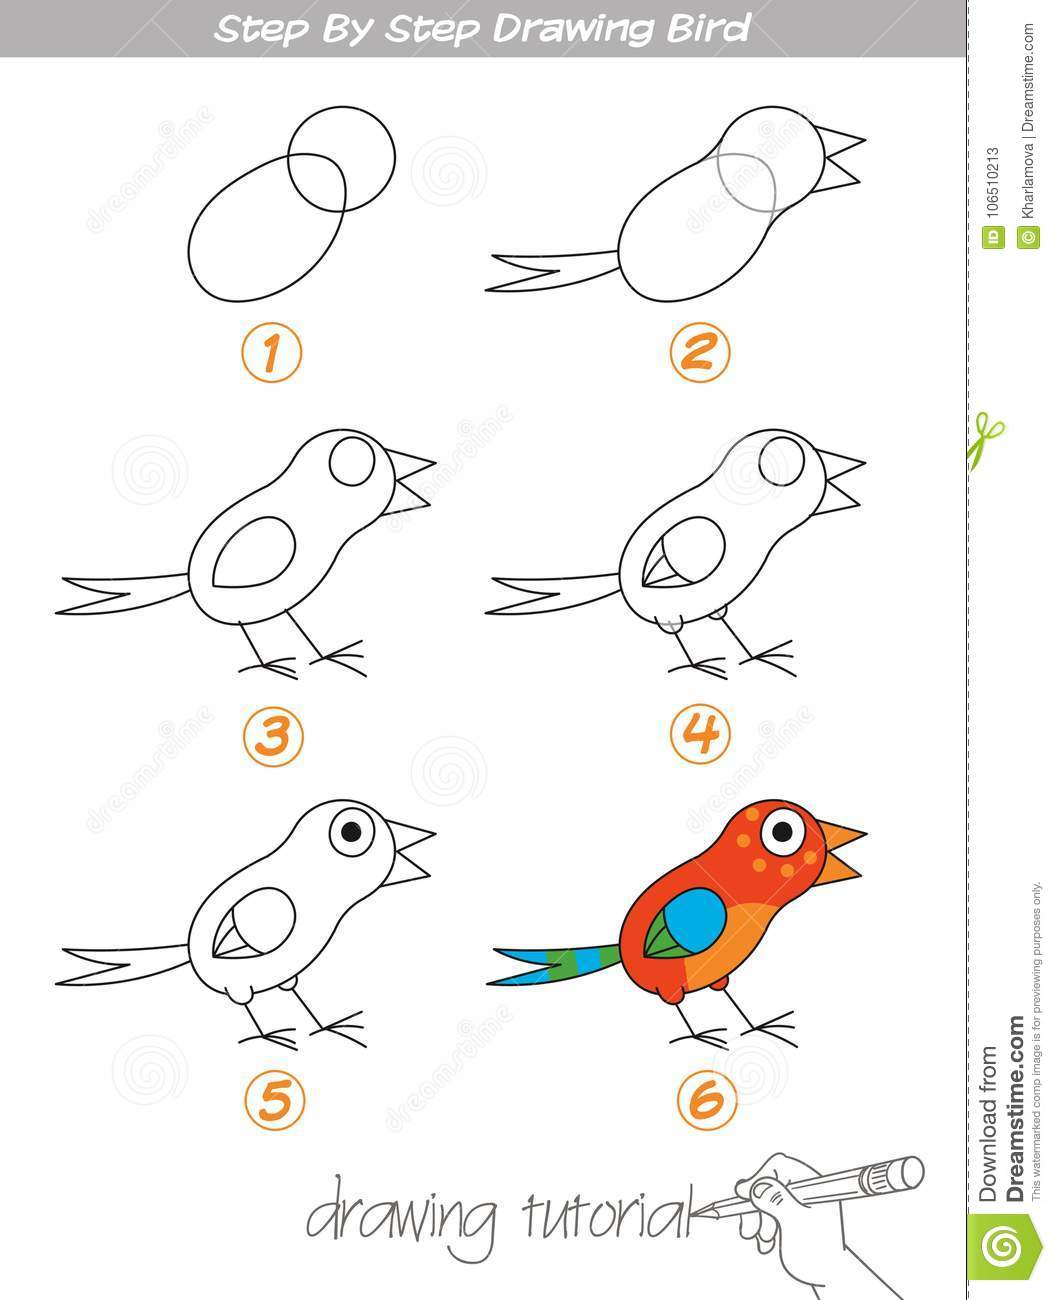 Step By Step Drawing Bird Stock Vector Illustration Of Logic